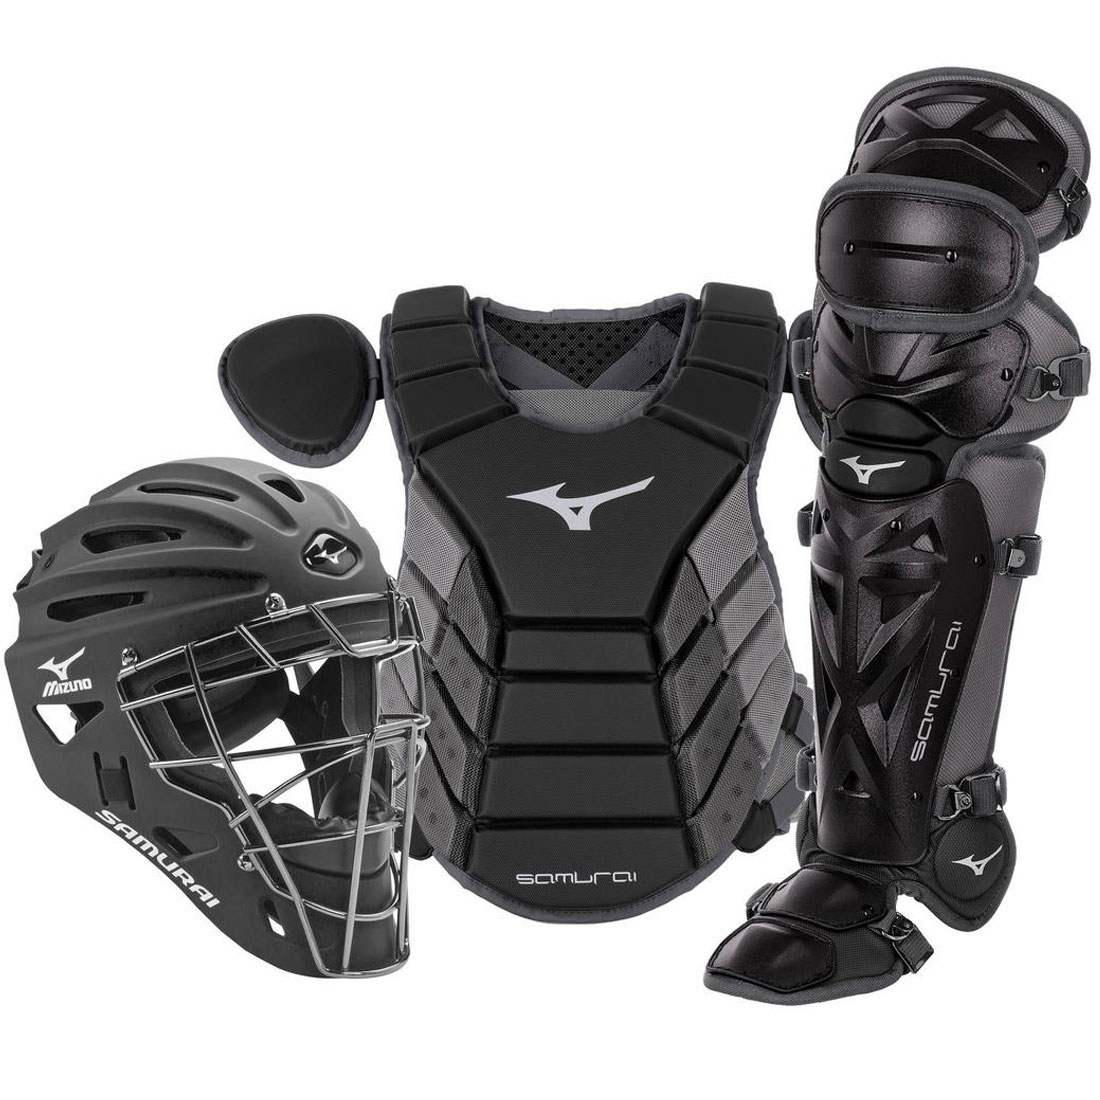 Mizuno Samurai Adult Baseball Catcher\'s Gear Set 380417/380418